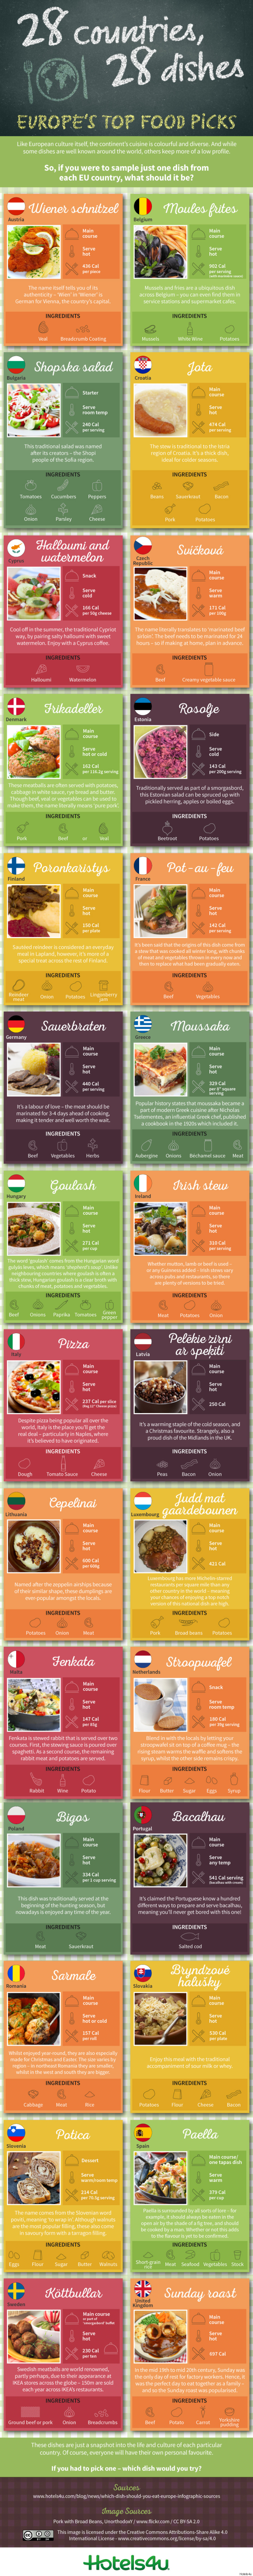 The one dish you must eat in 28 european countries huffpost 28 countries forumfinder Image collections